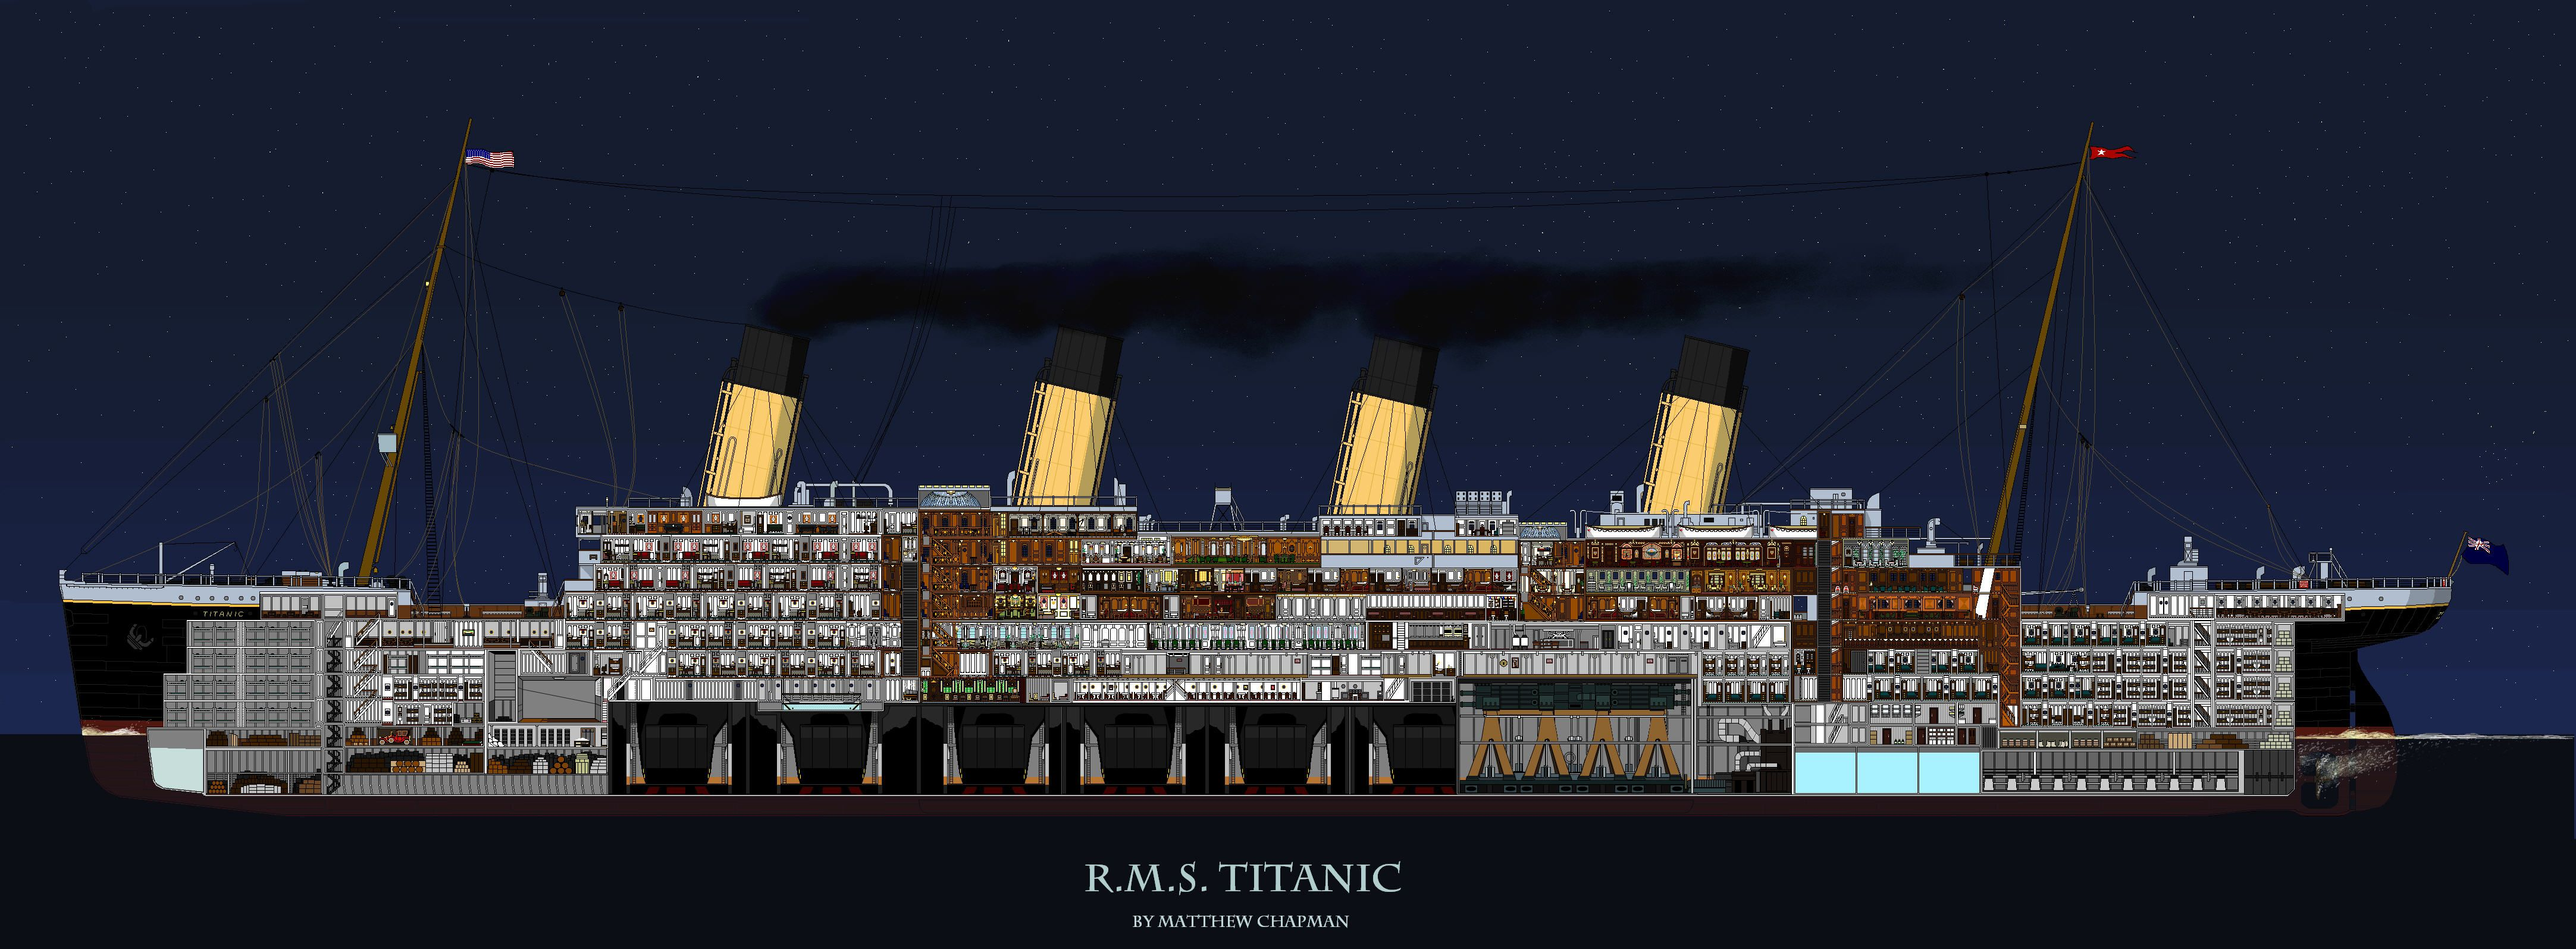 an overview of the r m s titanics disaster Resources to teach about the sinking of the titanic 1912, the rms titanic set sail on a five-day journey across the north atlantic ocean, from southampton.